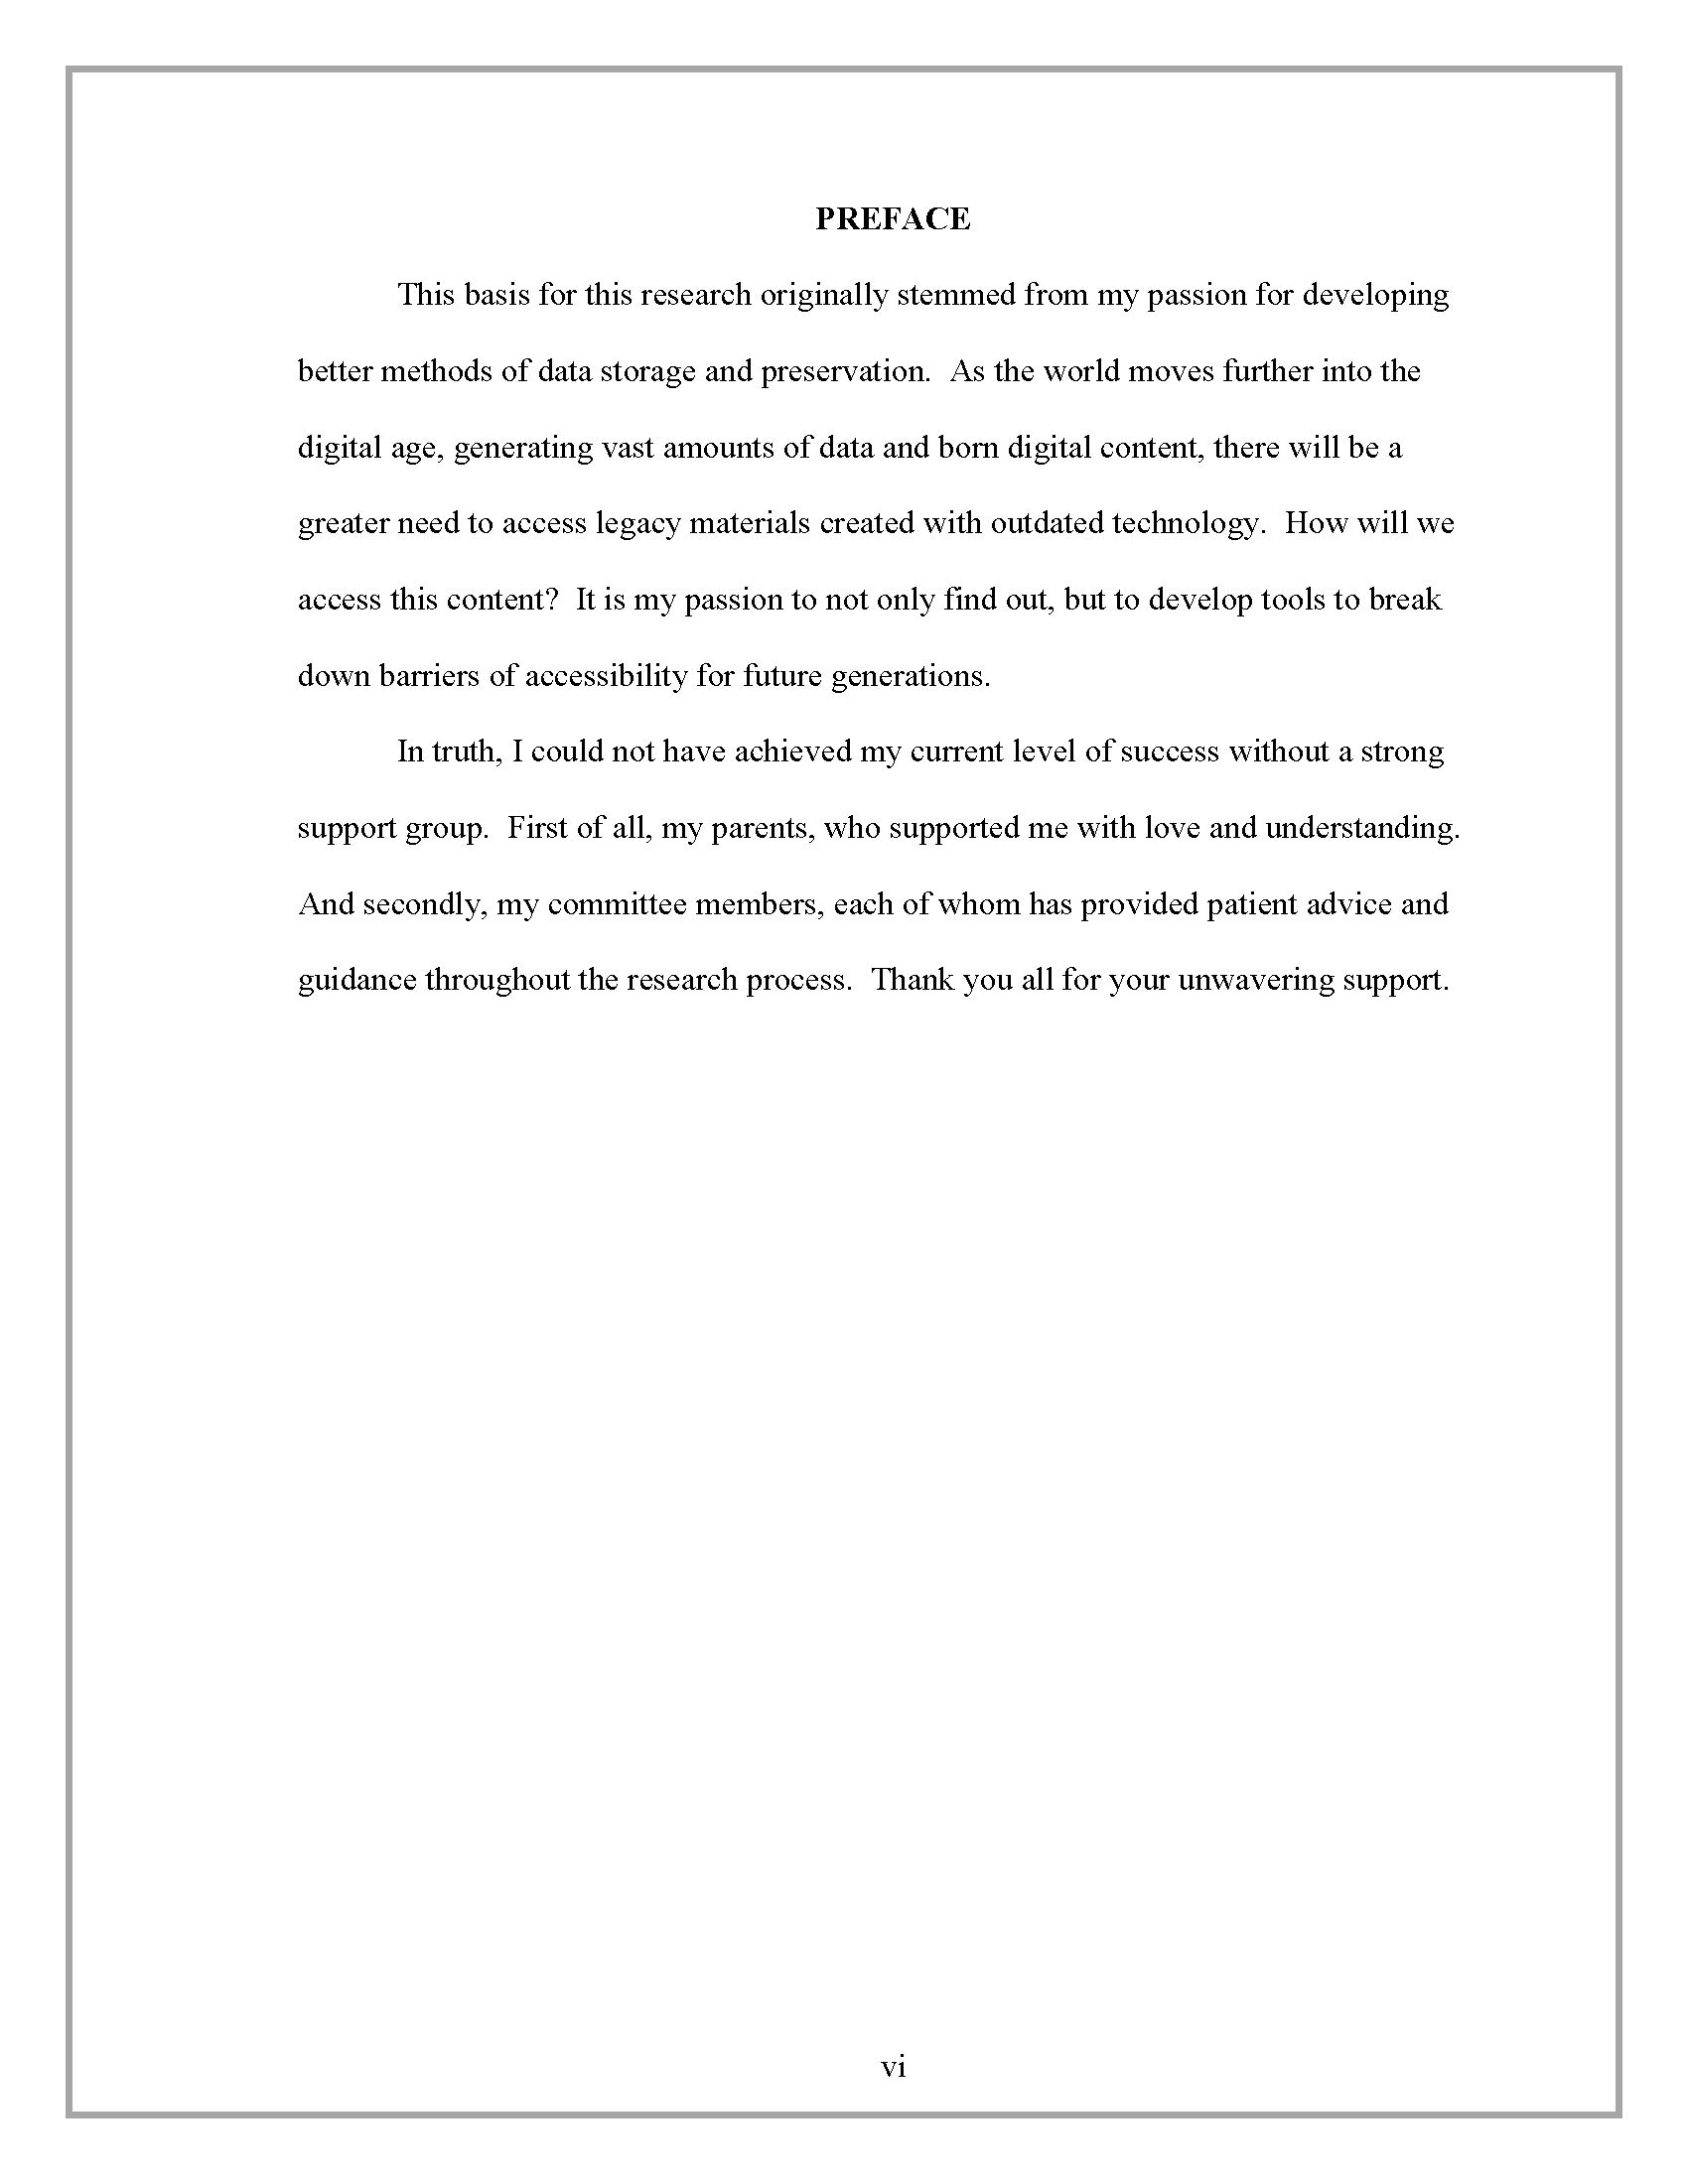 Is A Research Paper An Essay How It Should Look Argument Essay Thesis Statement also Wonder Of Science Essay Preface  Thesis And Dissertation  Research Guides At Sam Houston  Essay Writing Business